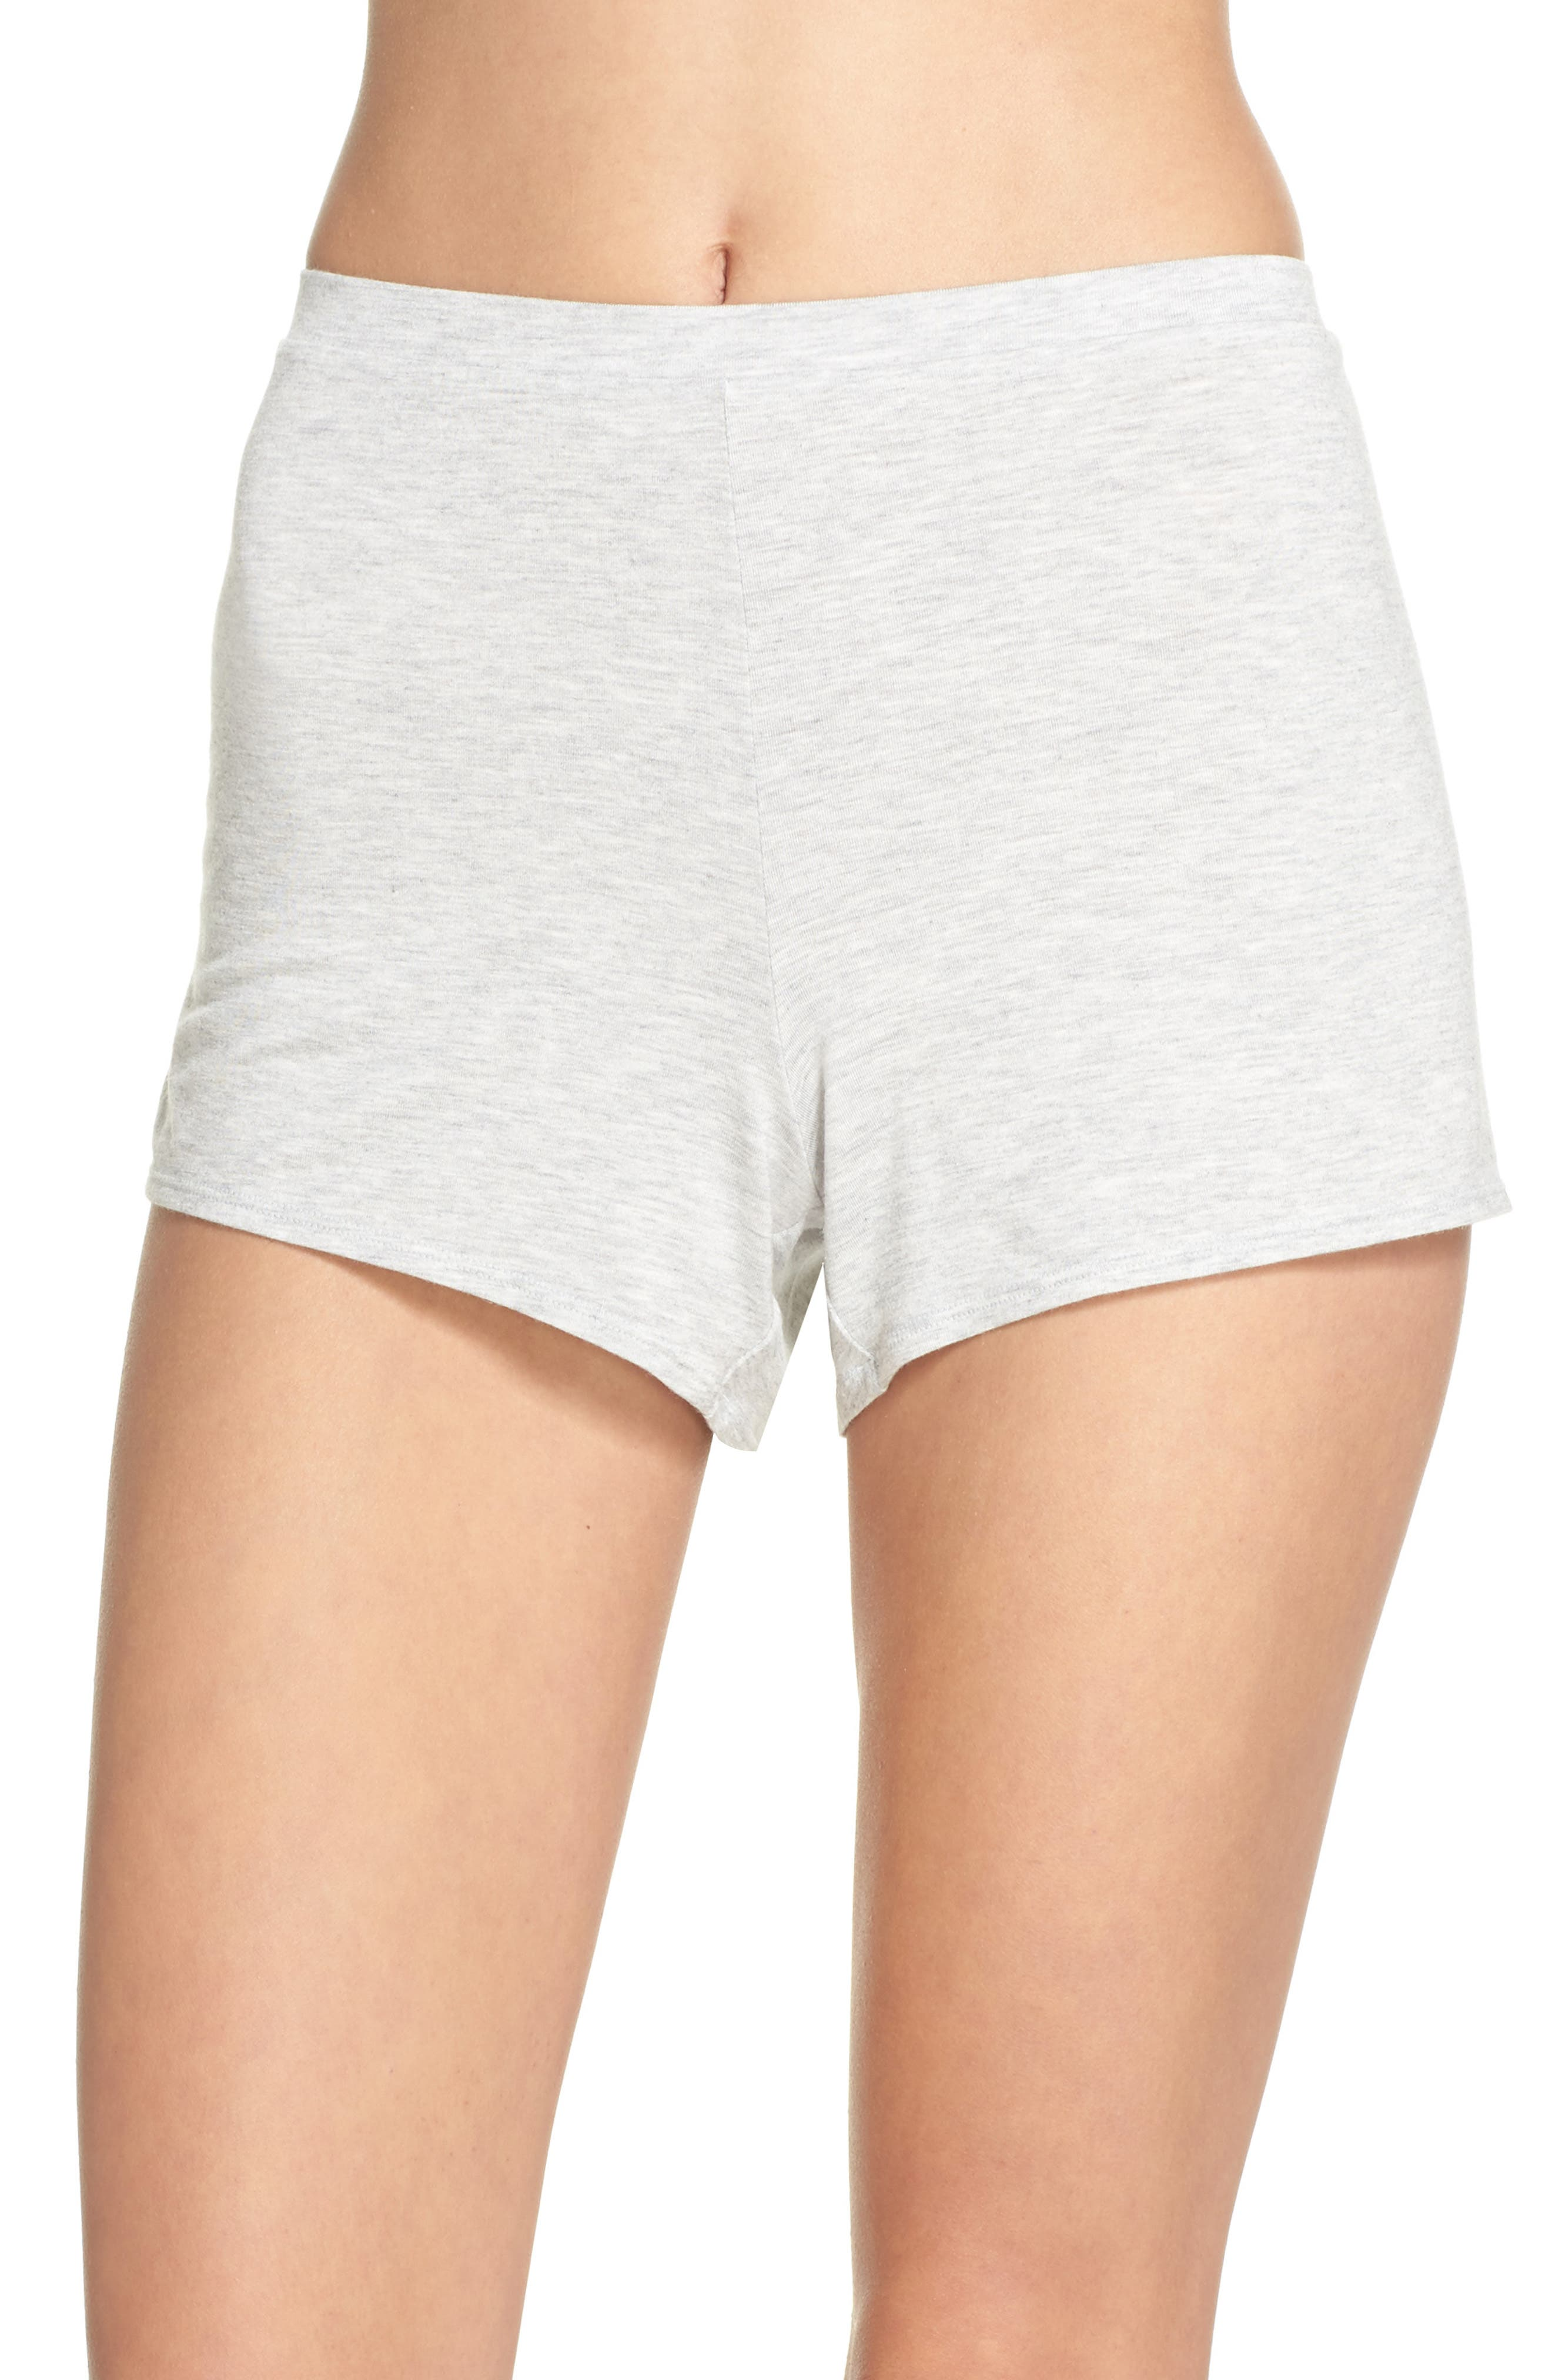 Undressed Pajama Shorts,                         Main,                         color, Silver